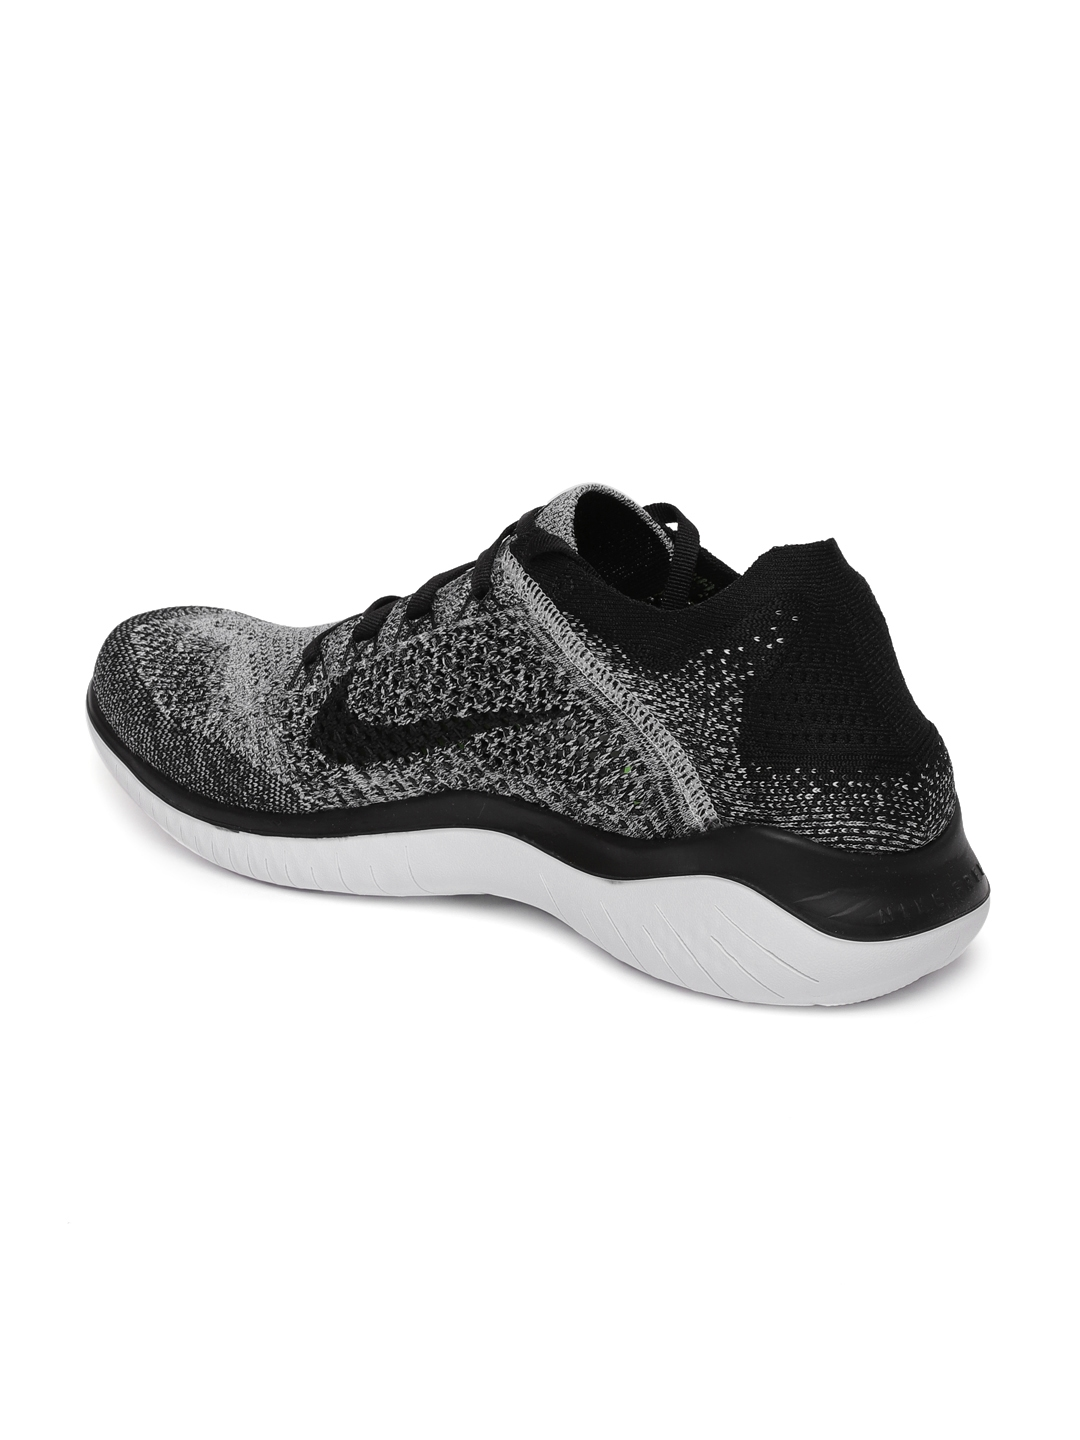 050c9bf3696db Buy Nike Men White   Black Free RN Flyknit 2018 Running Shoes ...